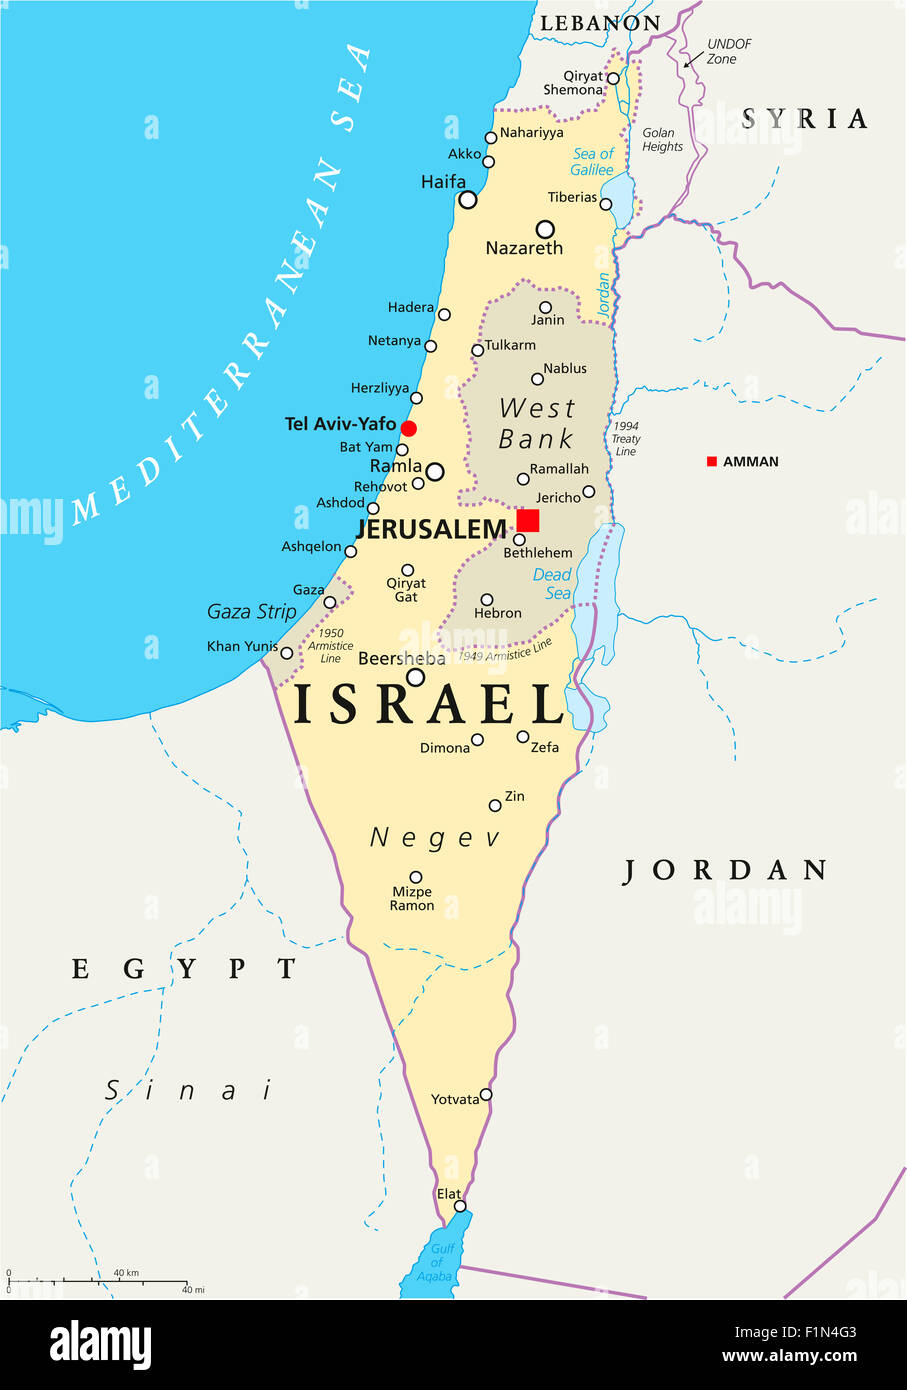 Israel Political Map With Capital Jerusalem National Borders - Isreal map